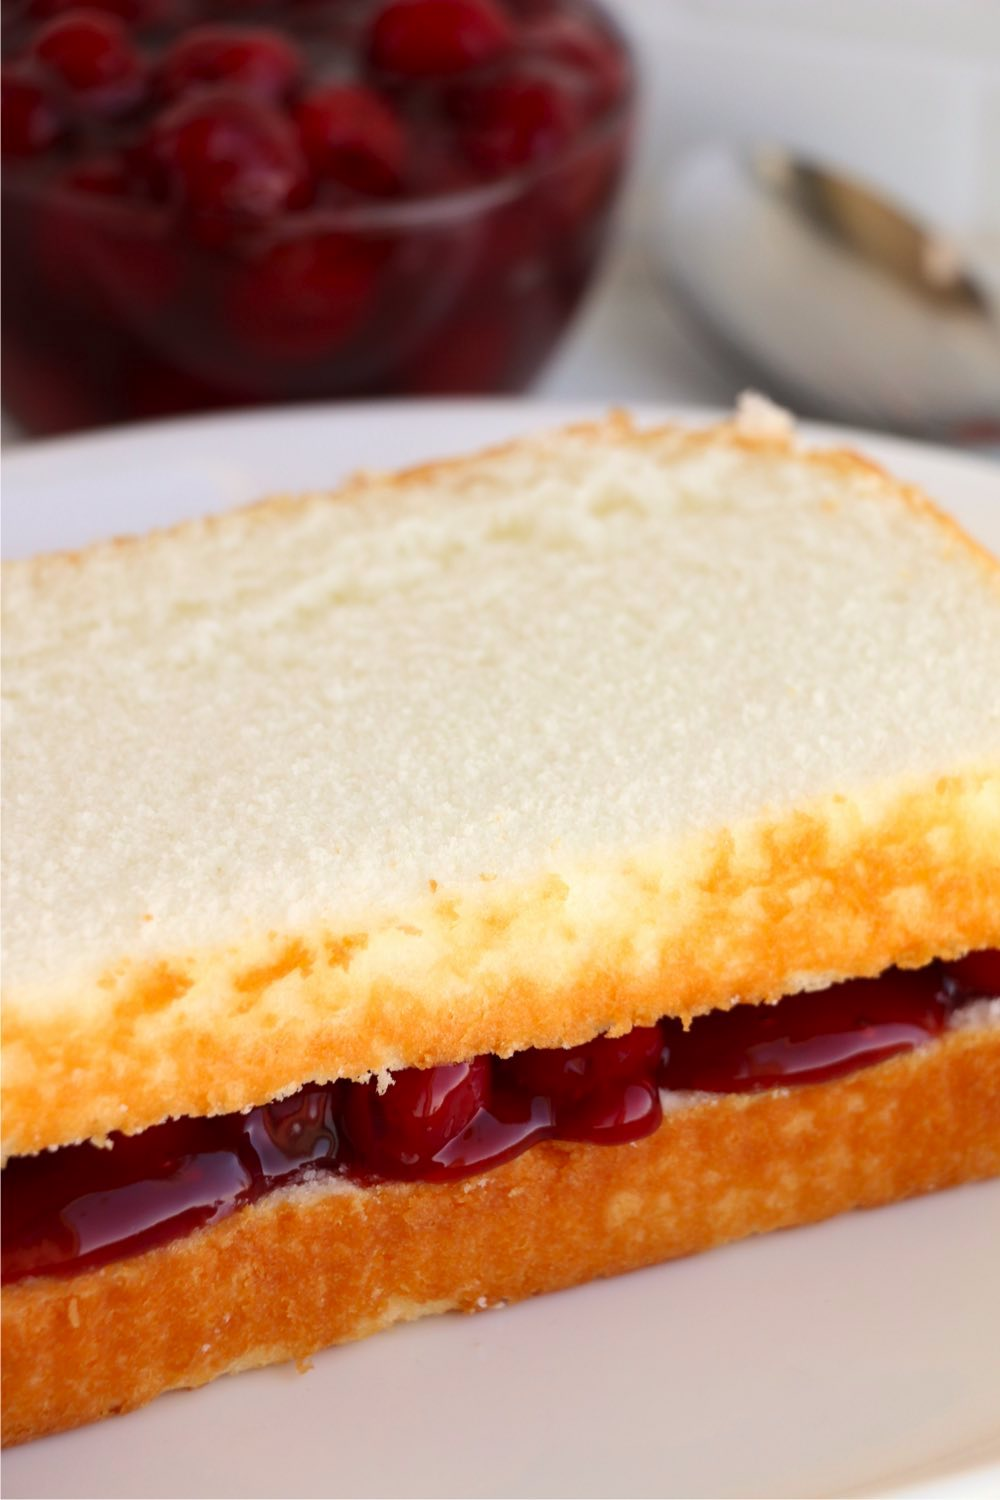 layers of pound cake with canned cherries in the middle